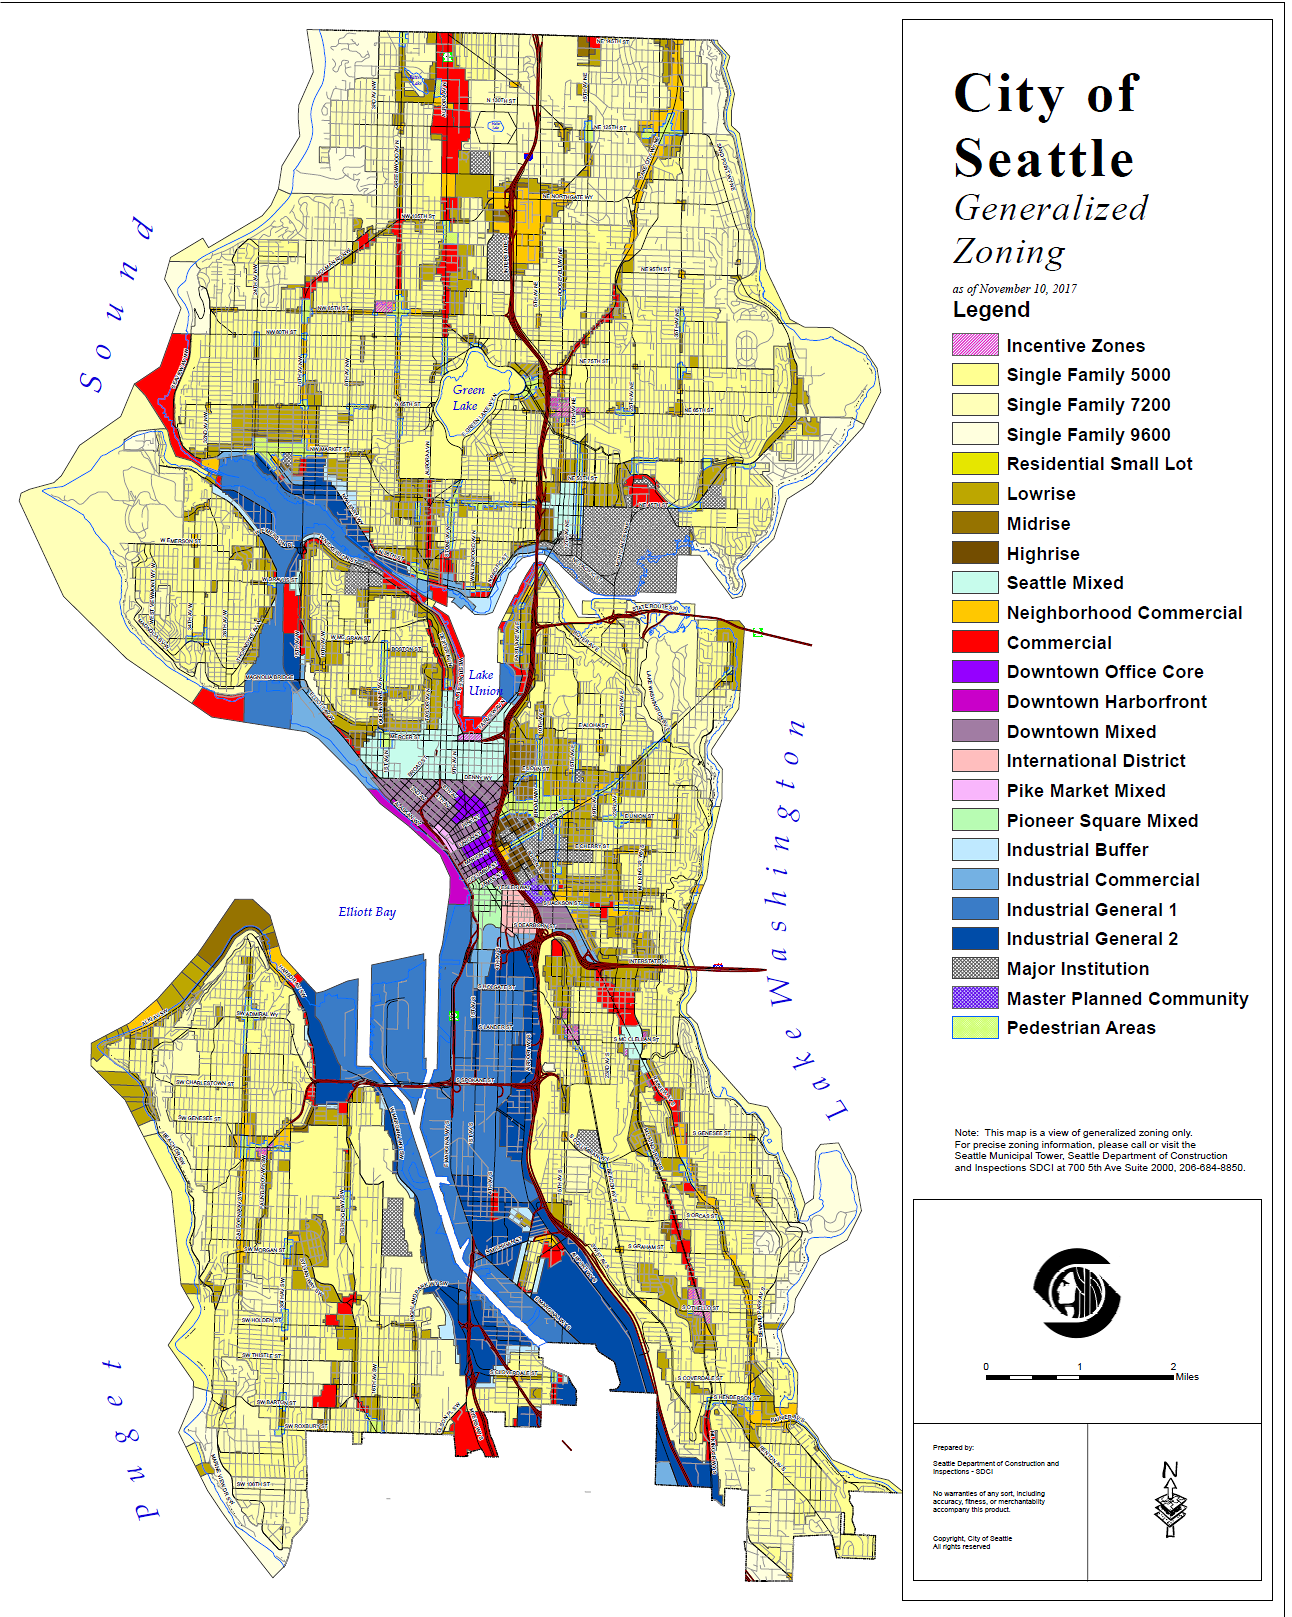 City Of Seattle Zoning Map Zoning and Segregation in the City of Seattle | Events | King